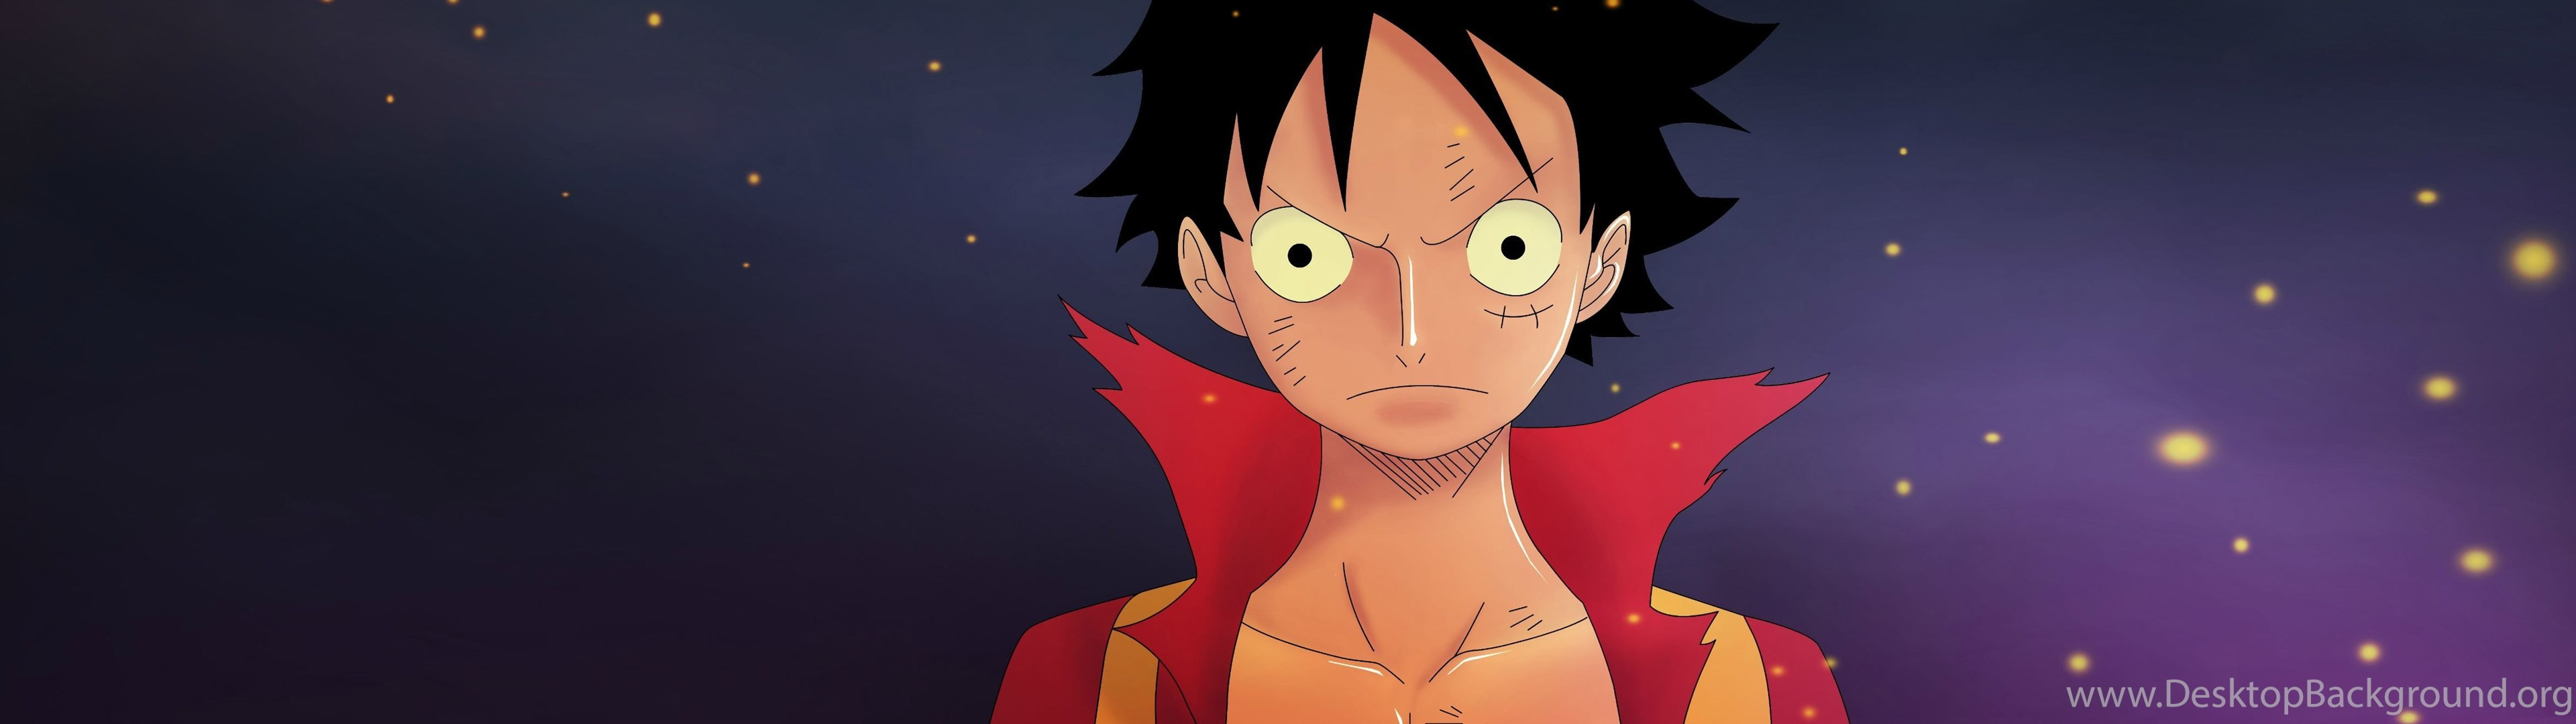 One Piece Luffy Hd Picture Wallpapers 10847 Hd Wallpapers Site